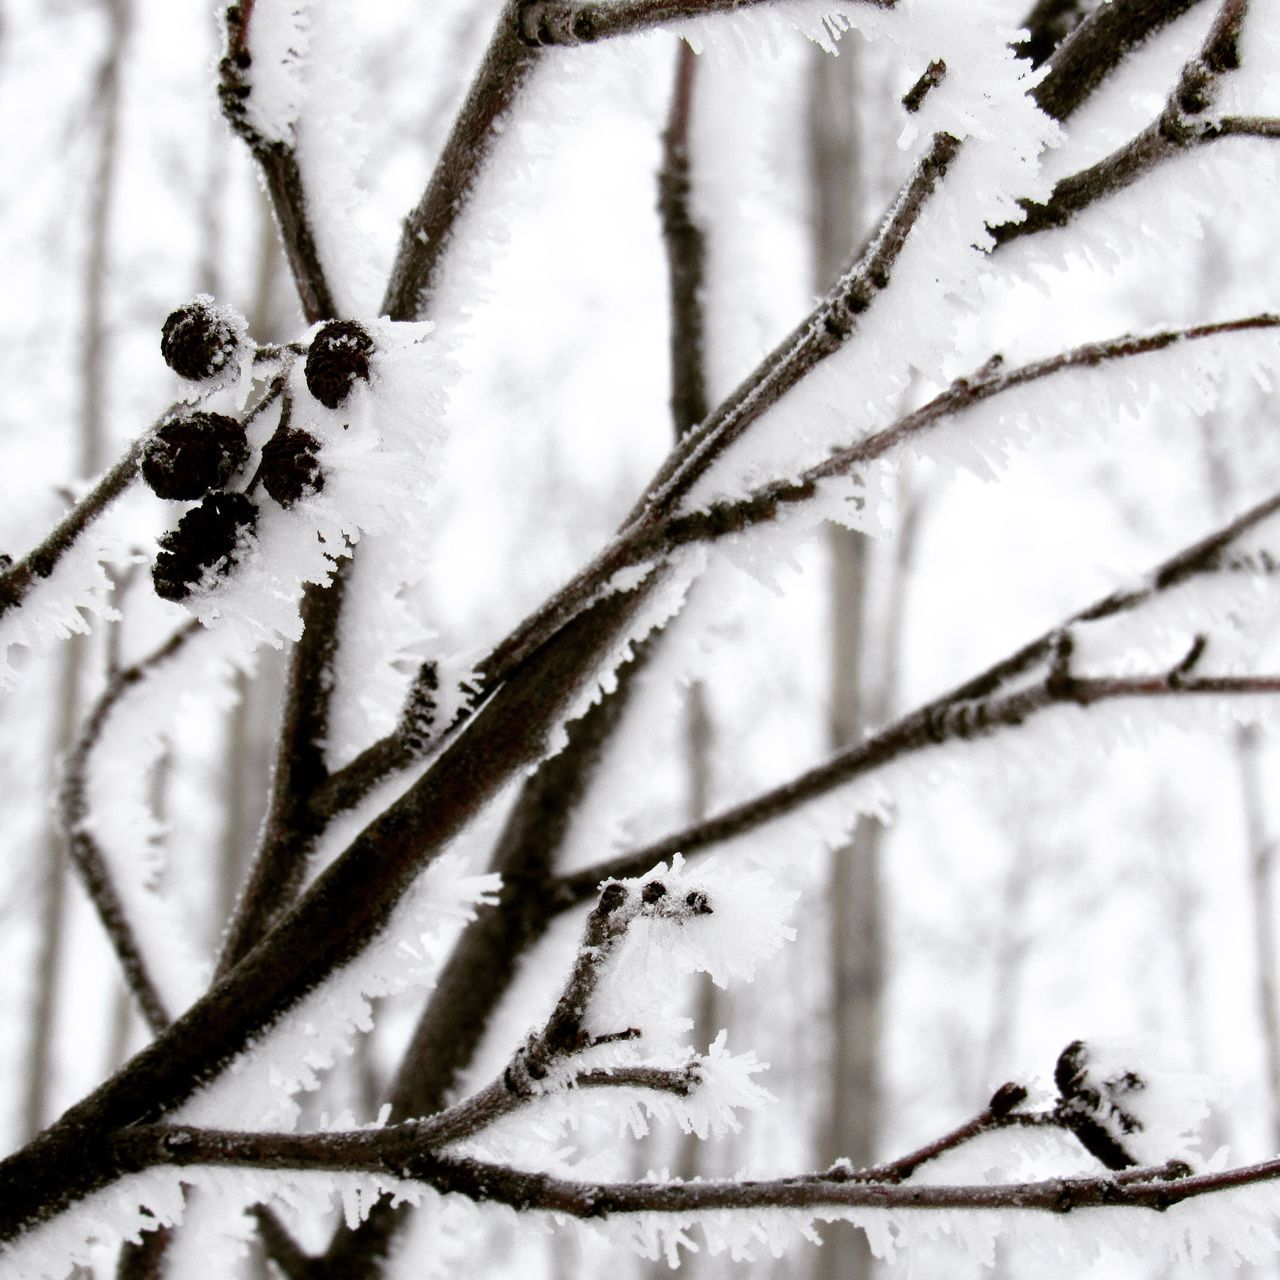 winter, cold temperature, snow, weather, nature, frozen, plant, branch, close-up, white color, twig, tree, day, outdoors, frost, ice, no people, beauty in nature, growth, fragility, freshness